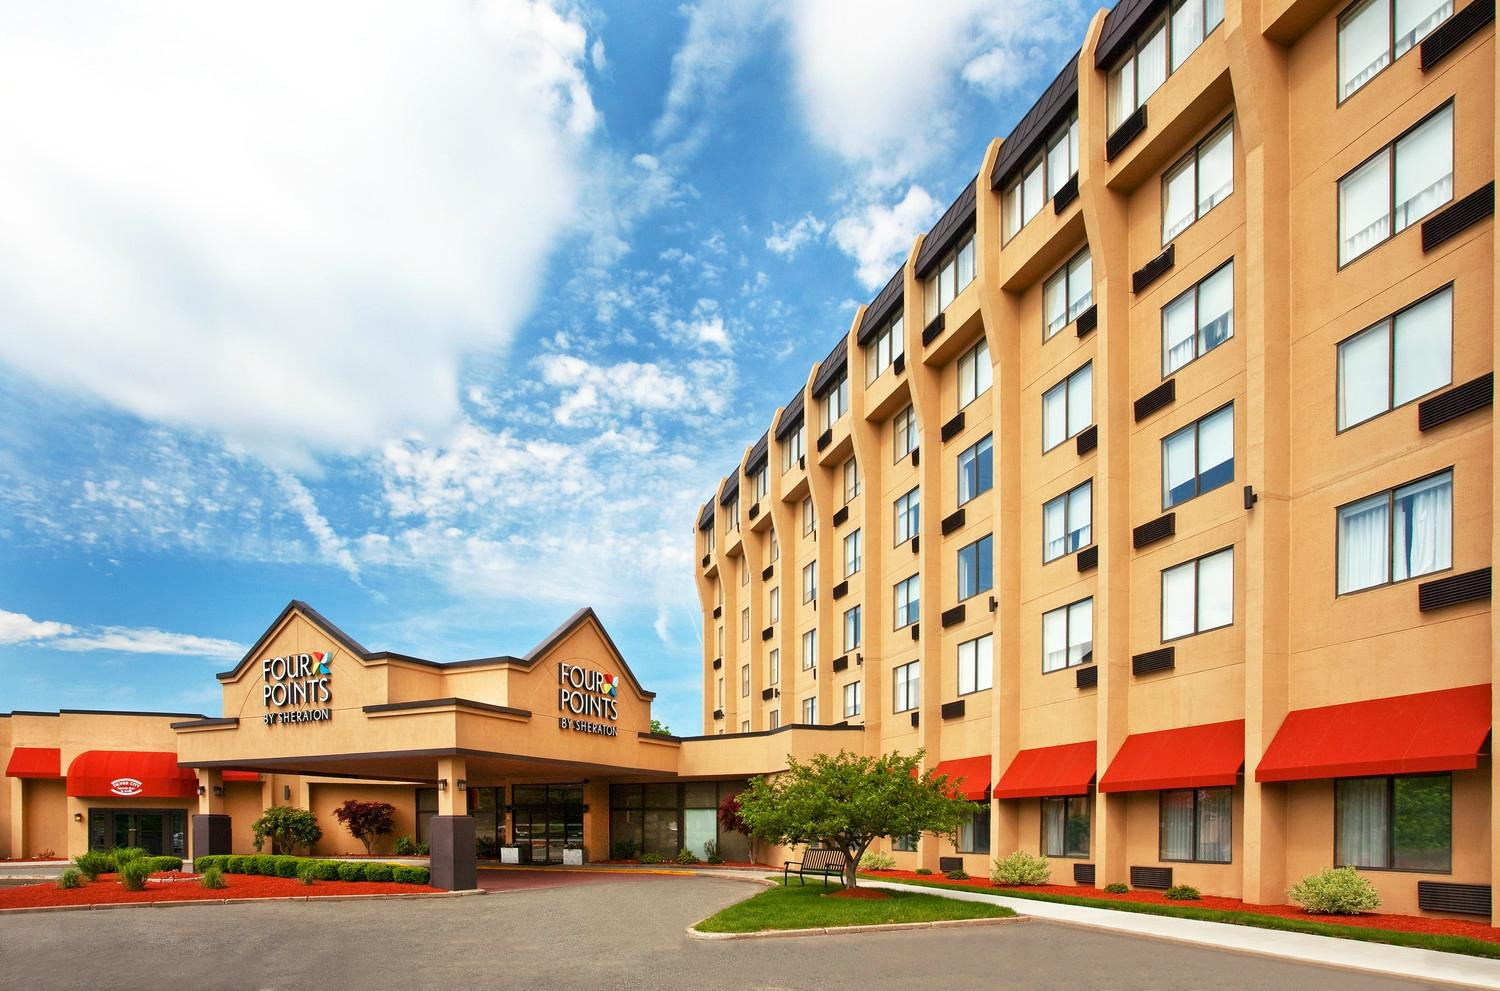 Four Points by Sheraton Meriden